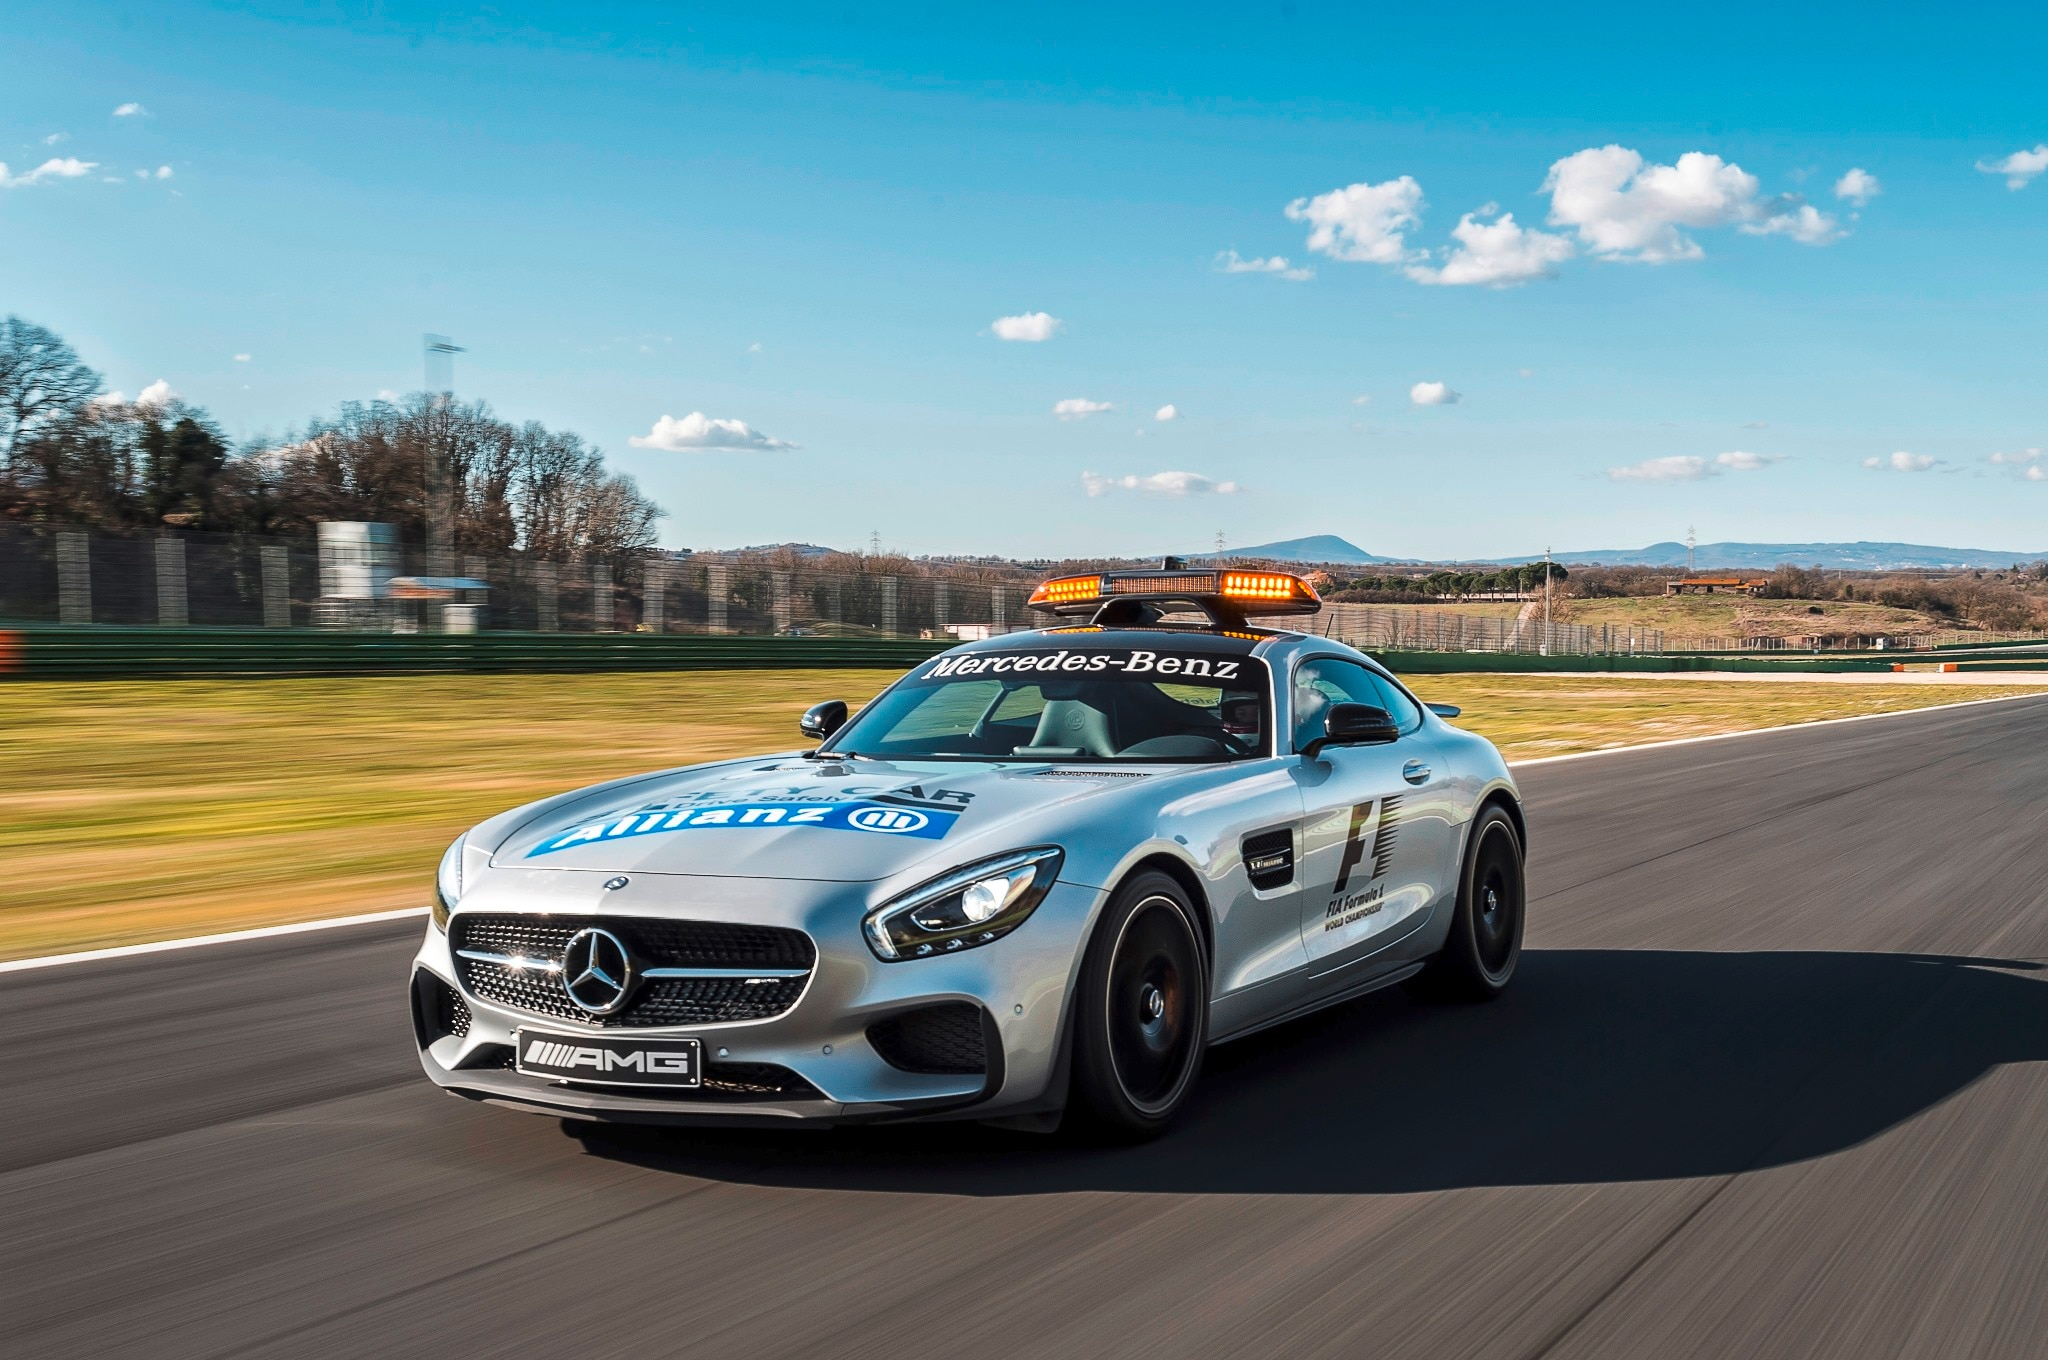 Mercedes amg gt s formula 1 safety car revealed for Mercedes benz f1